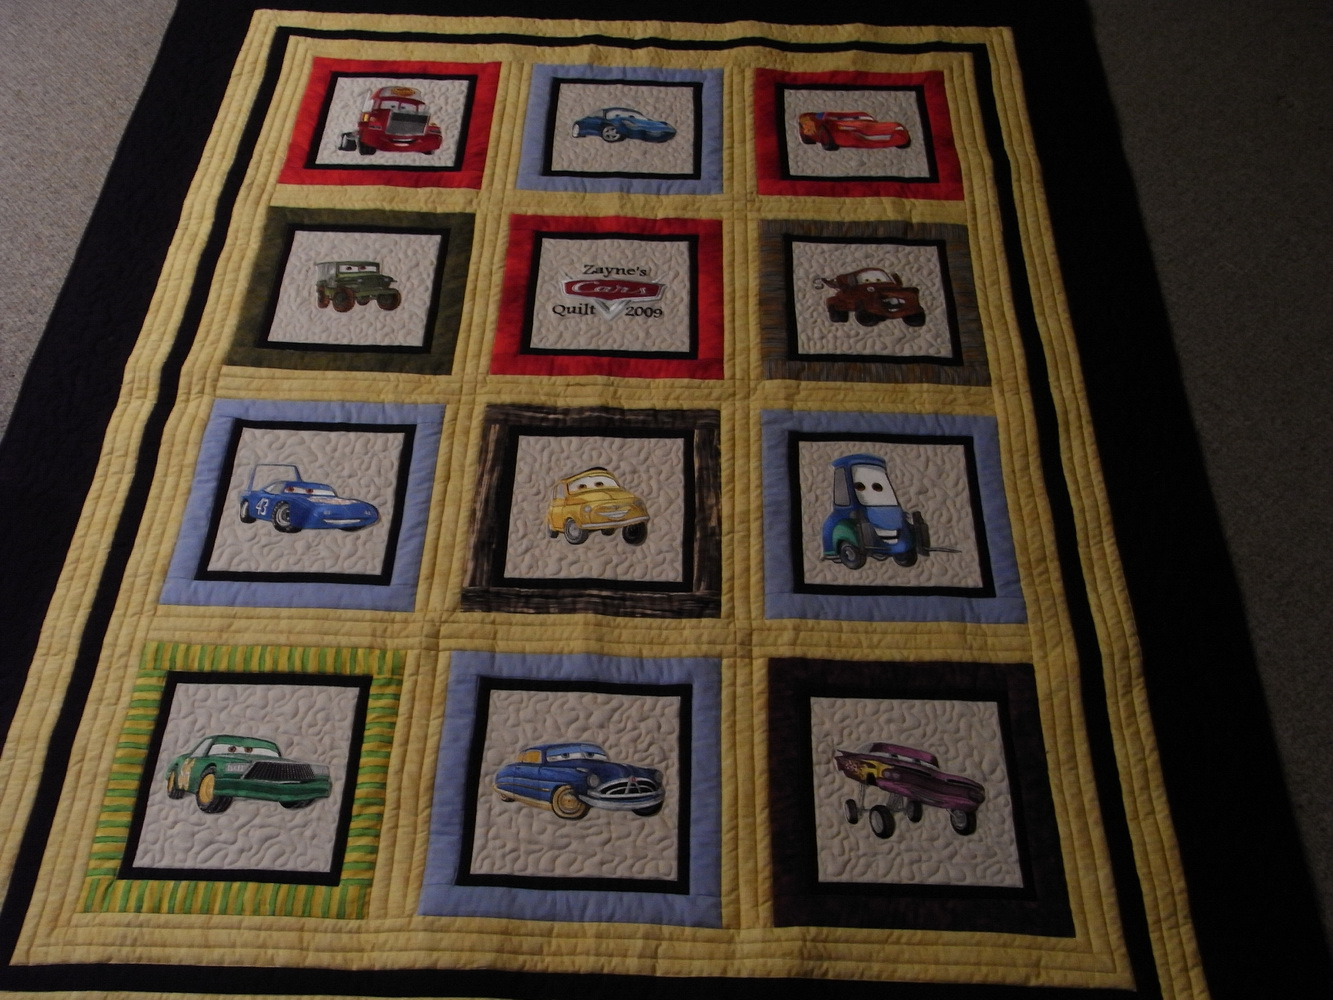 Cars designs on quilt embroidered